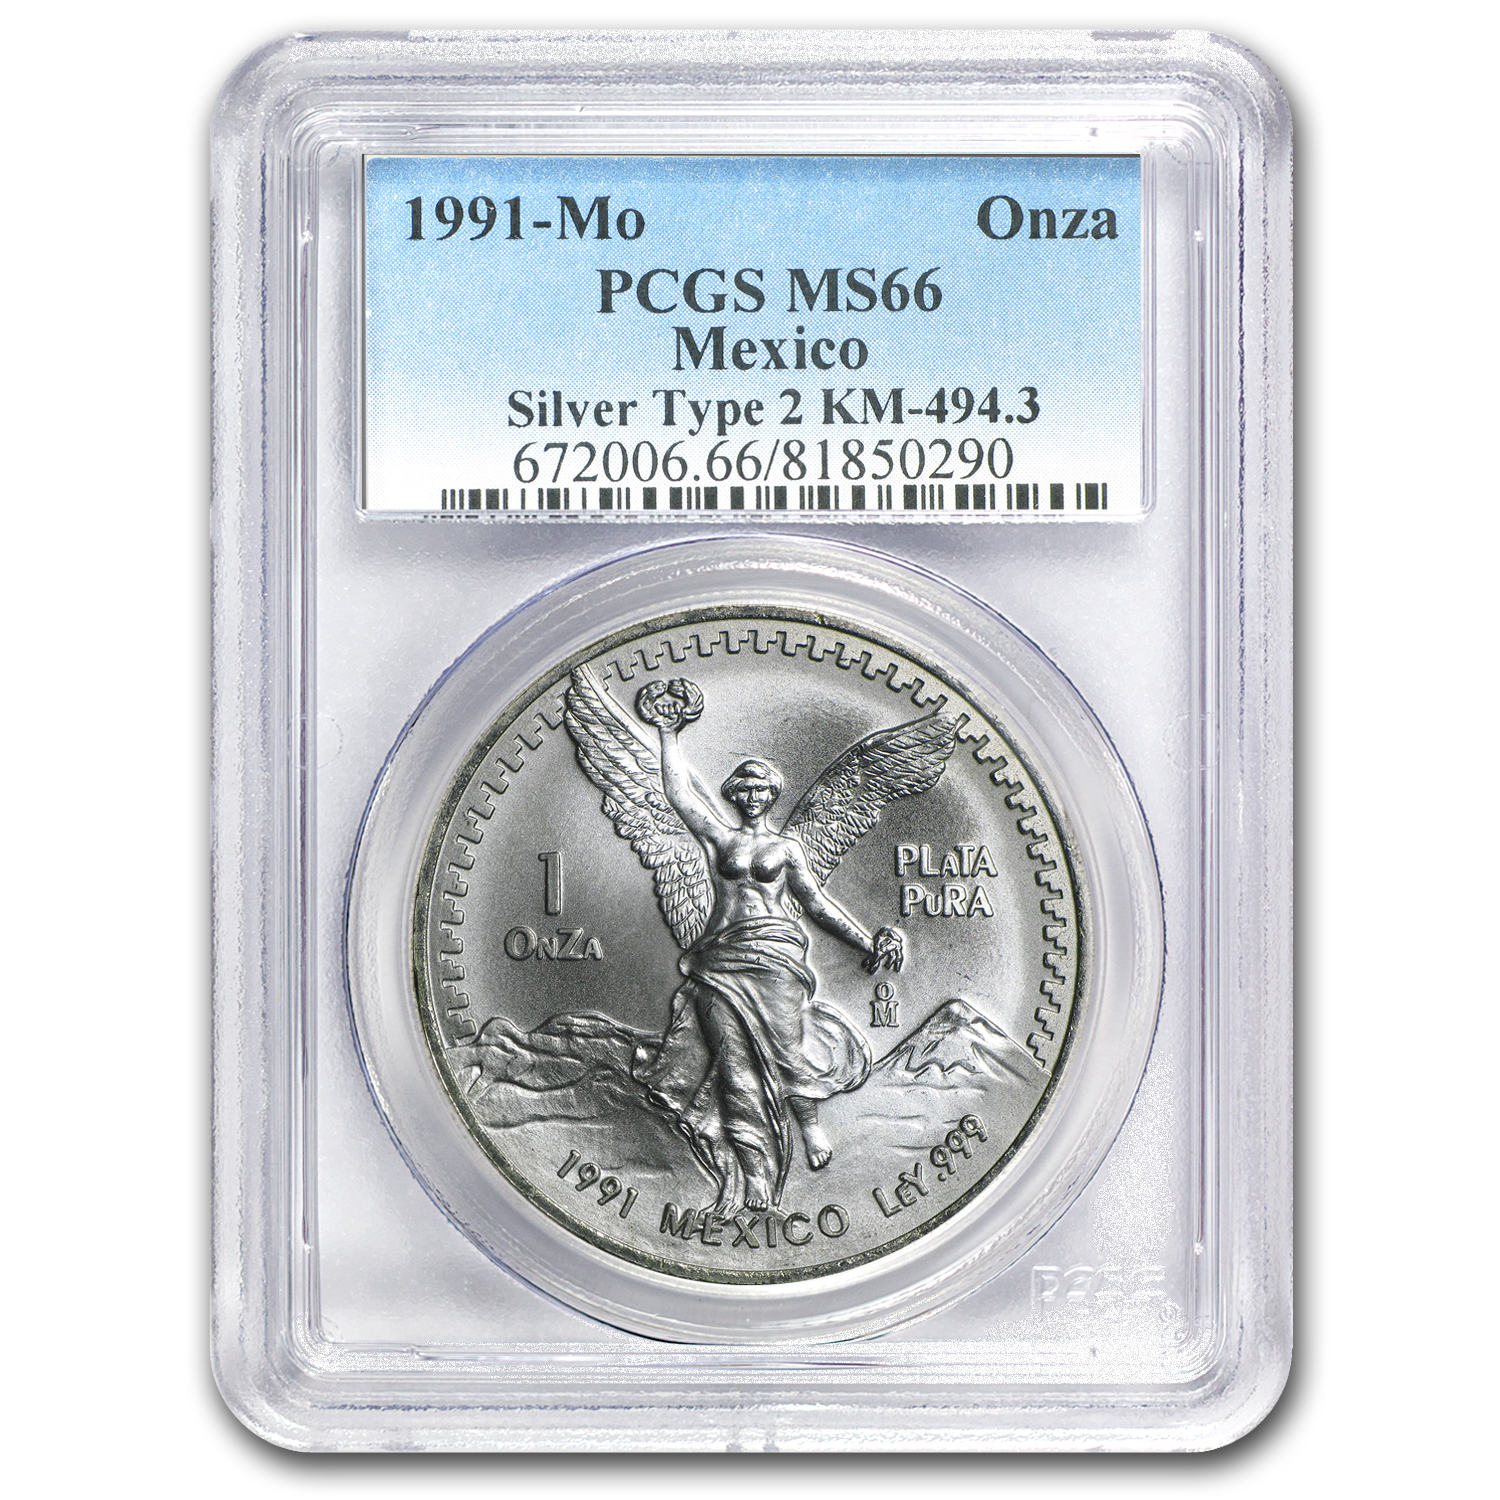 1991 Mexico 1 oz Silver Libertad Type 2 MS-66 PCGS